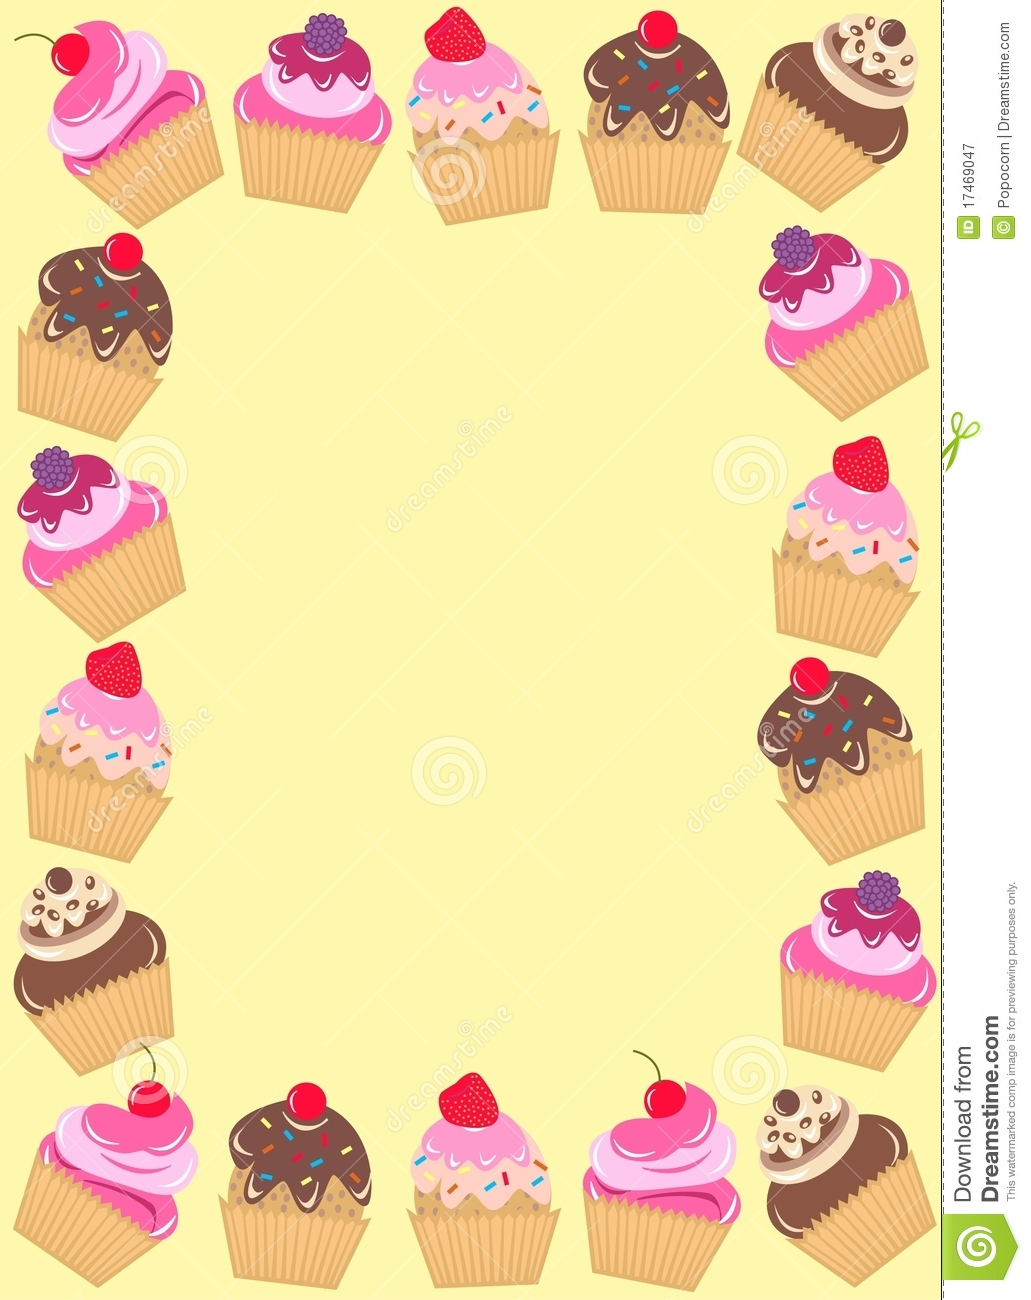 Cupcakes Clipart Border A Frame Of Cupcakes On Yellow